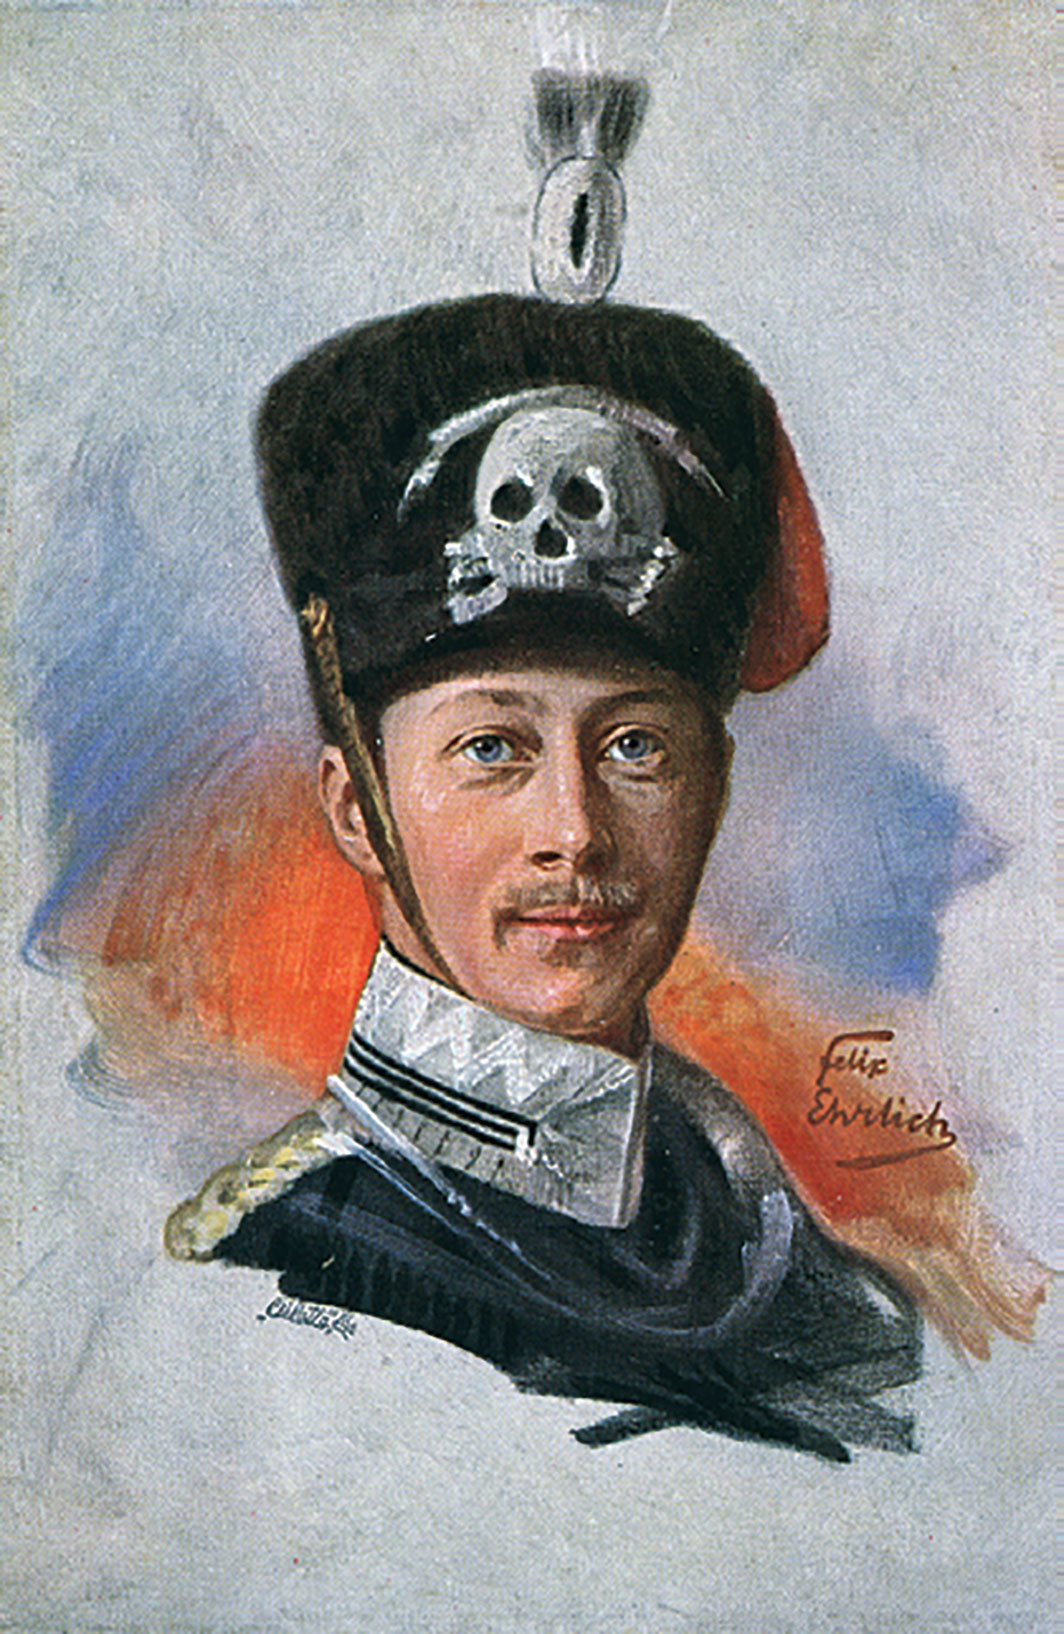 Postcard featuring a portrait of Crown Prince Wilhelm of Germany, date unknown.